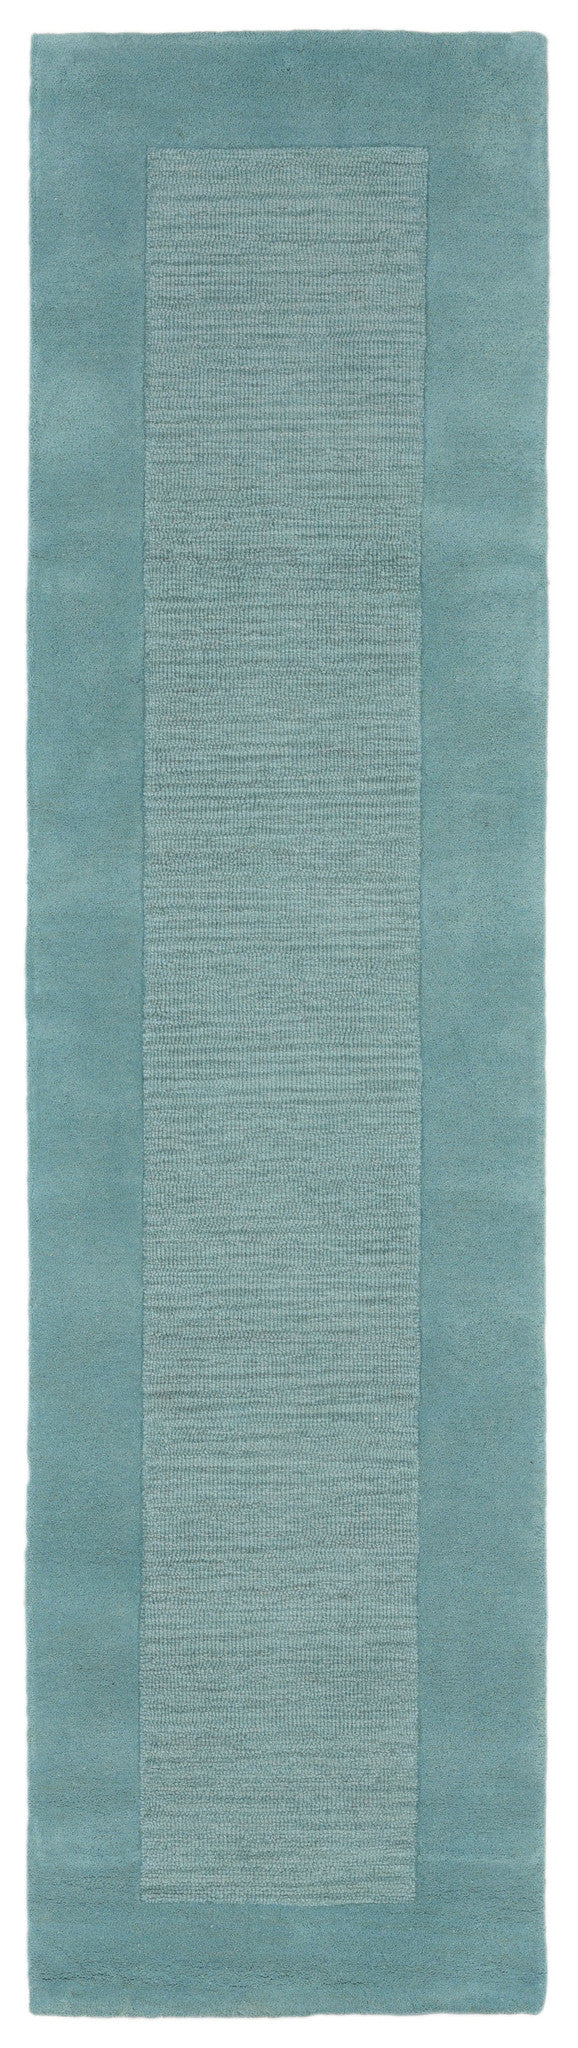 Trans-Ocean Imports MERR8122504 Mercer Collection Blue Finish Indoor Rug from Trans-Ocean